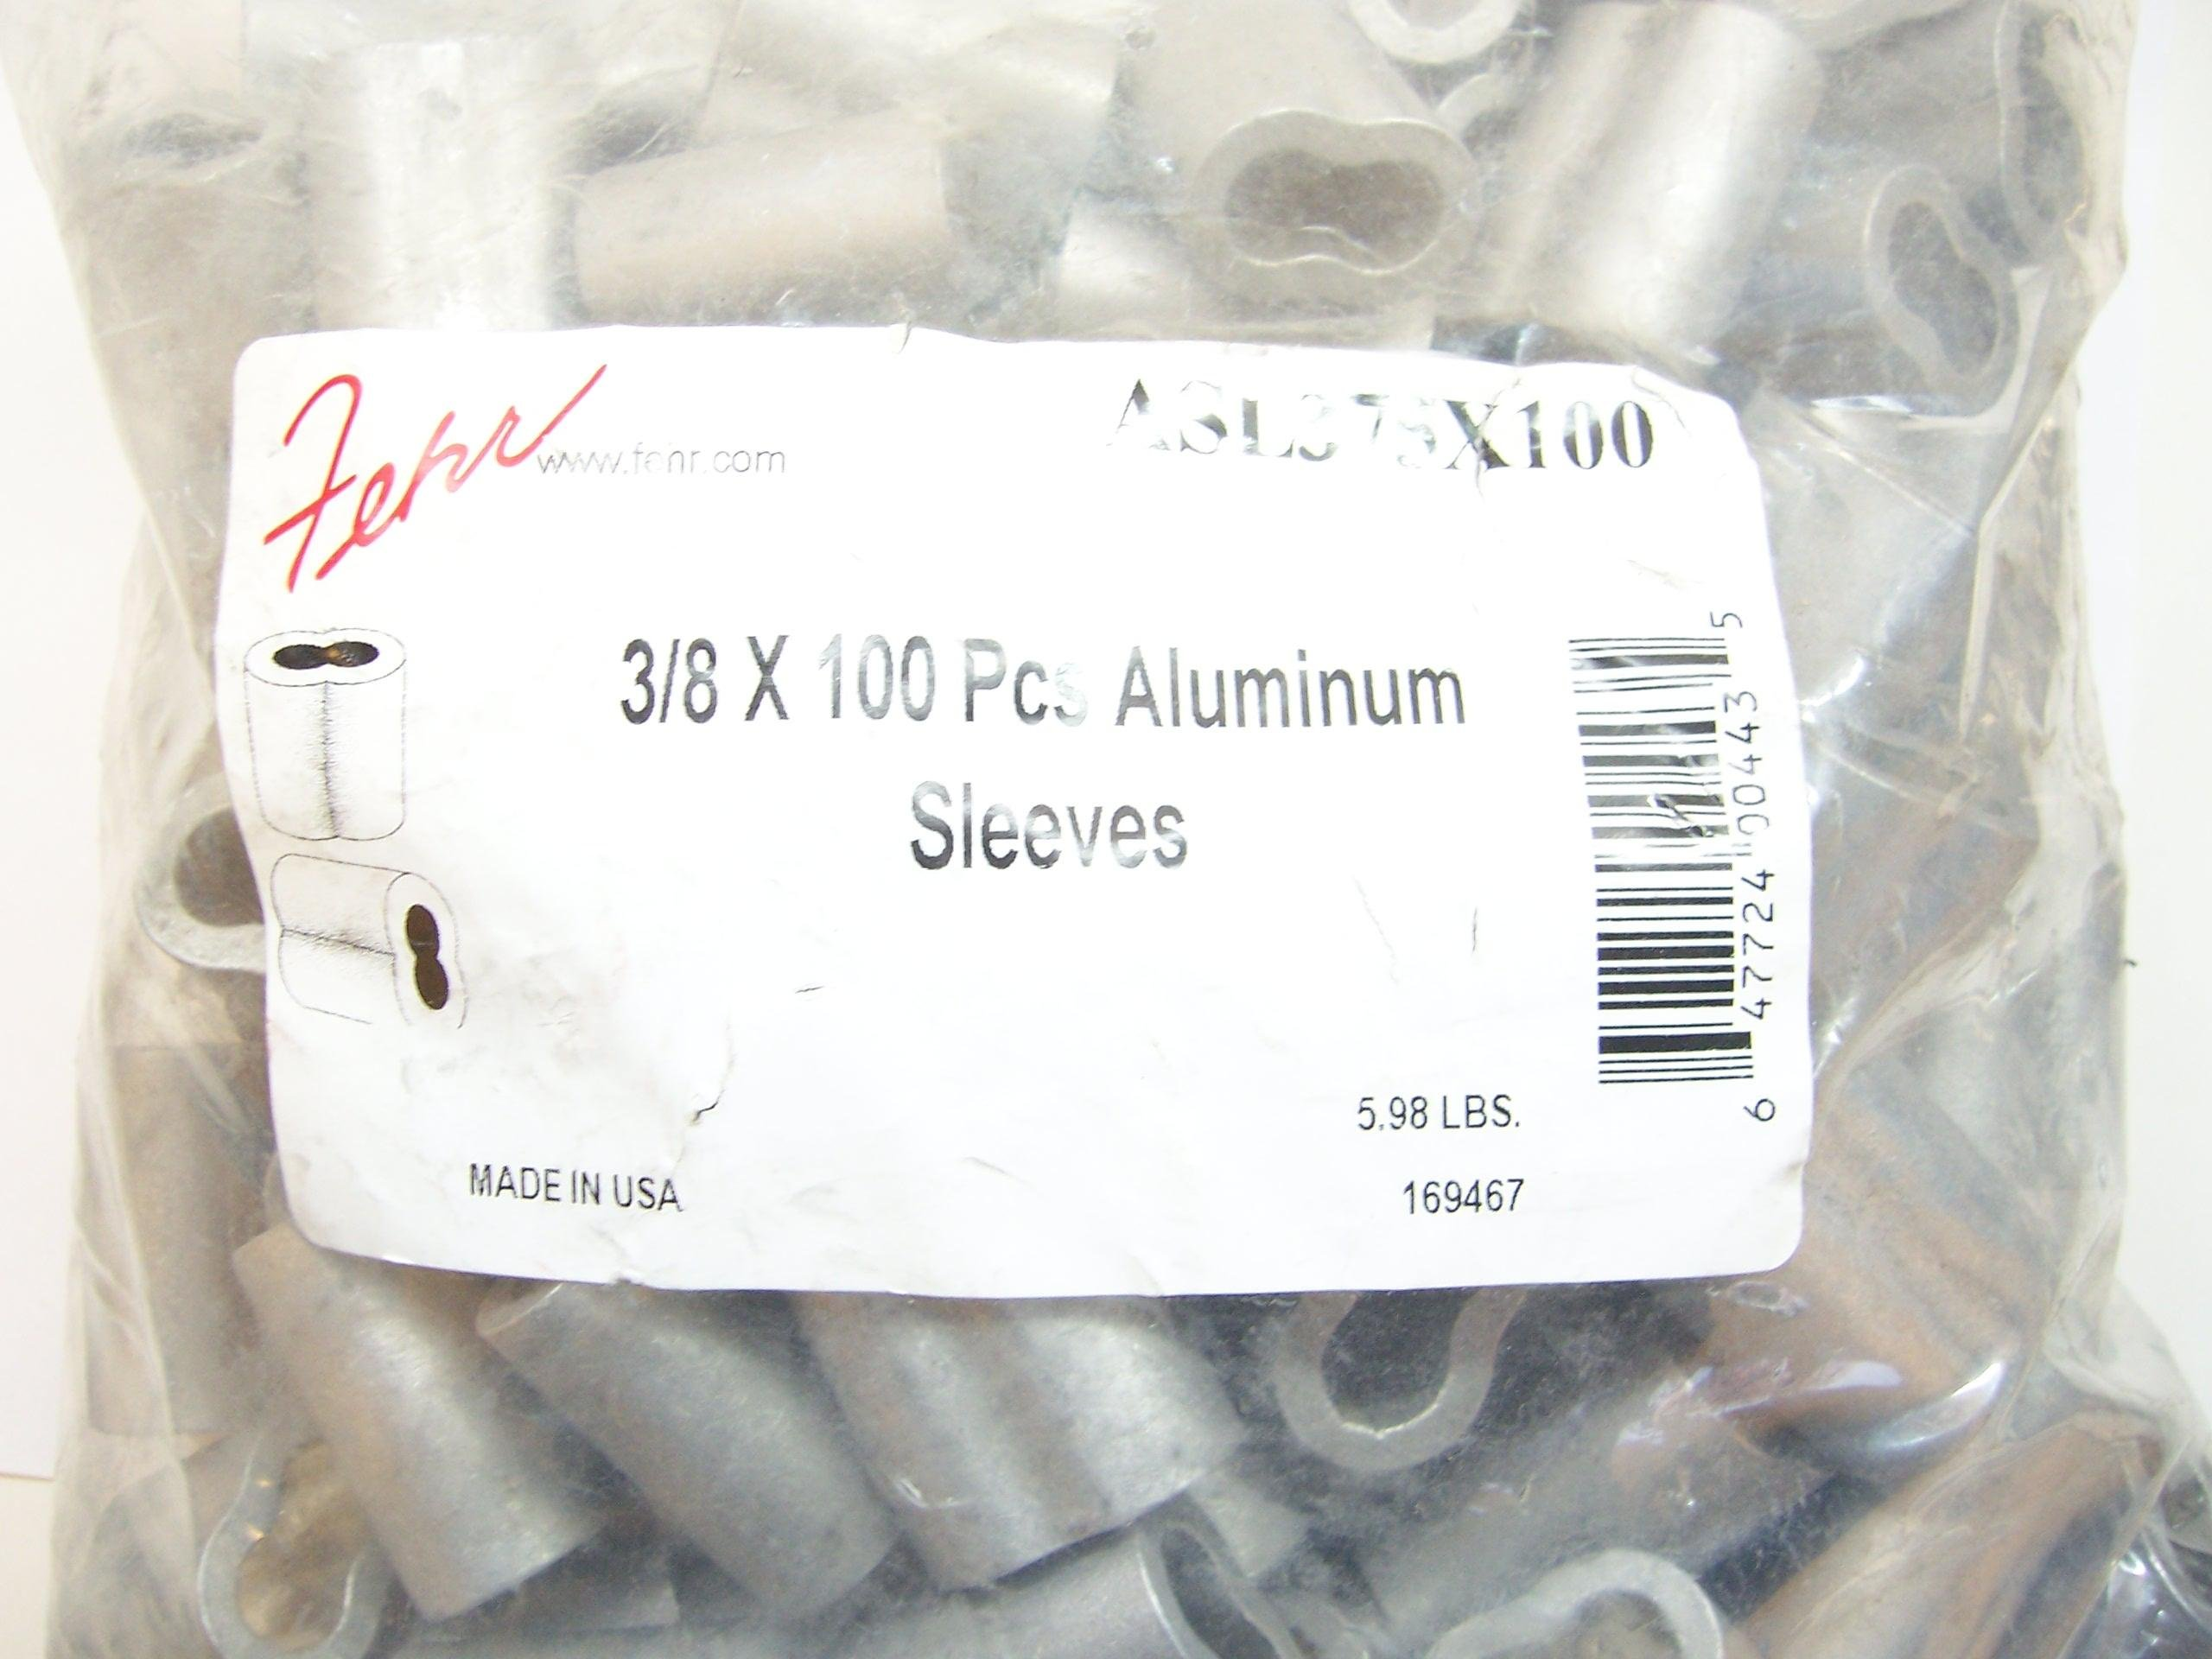 Aluminum Swage Sleeves for 3/8'' Diameter Cable, Made in USA. 100 pcs